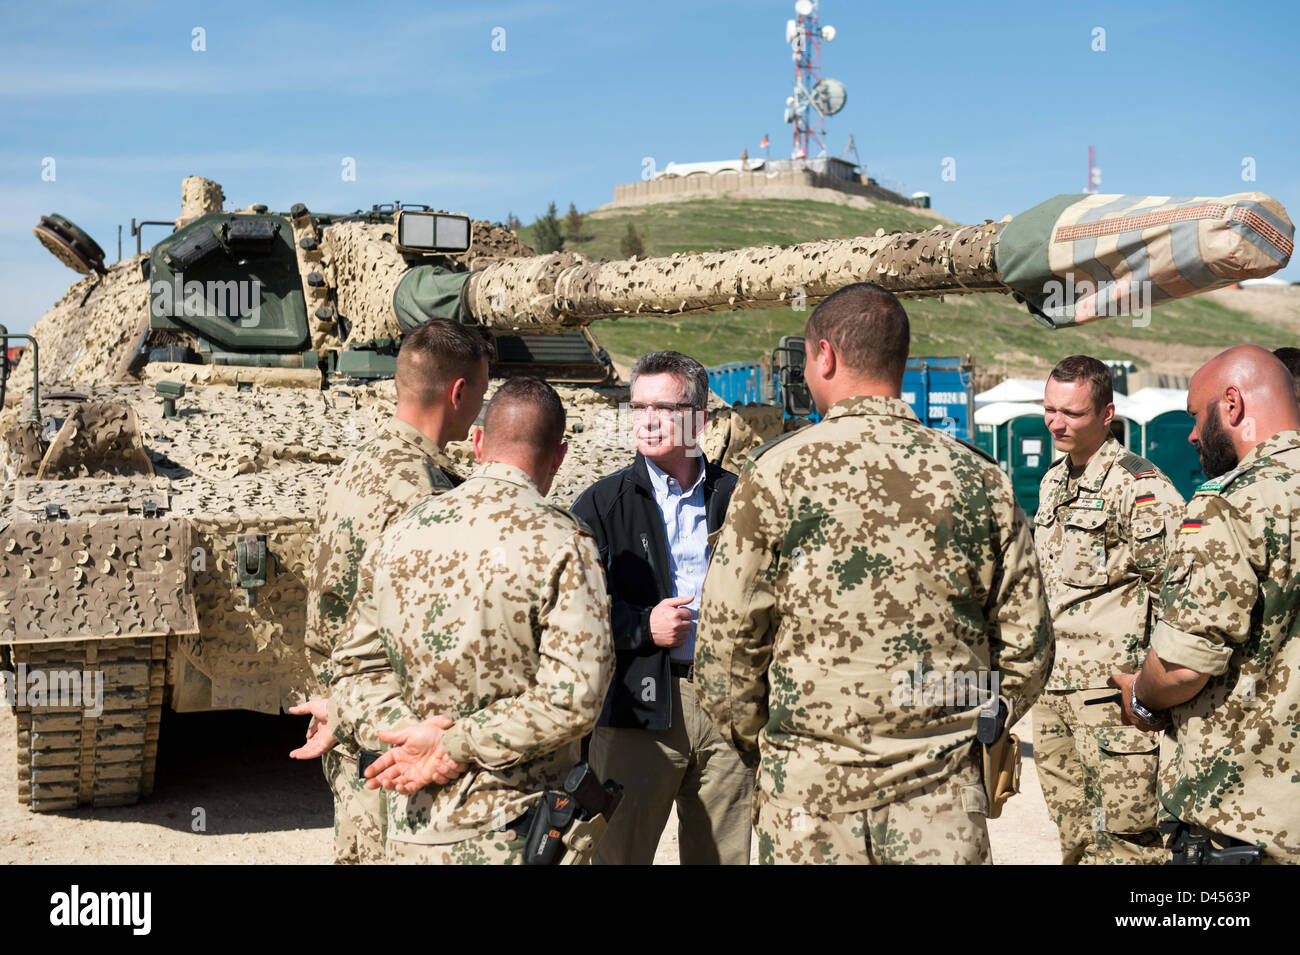 Mazar-i-Sharif, Afghanistan. 5th March 2013. German Defence Minister Thomas de Maiziere (C) talks with soldiers - Stock Image